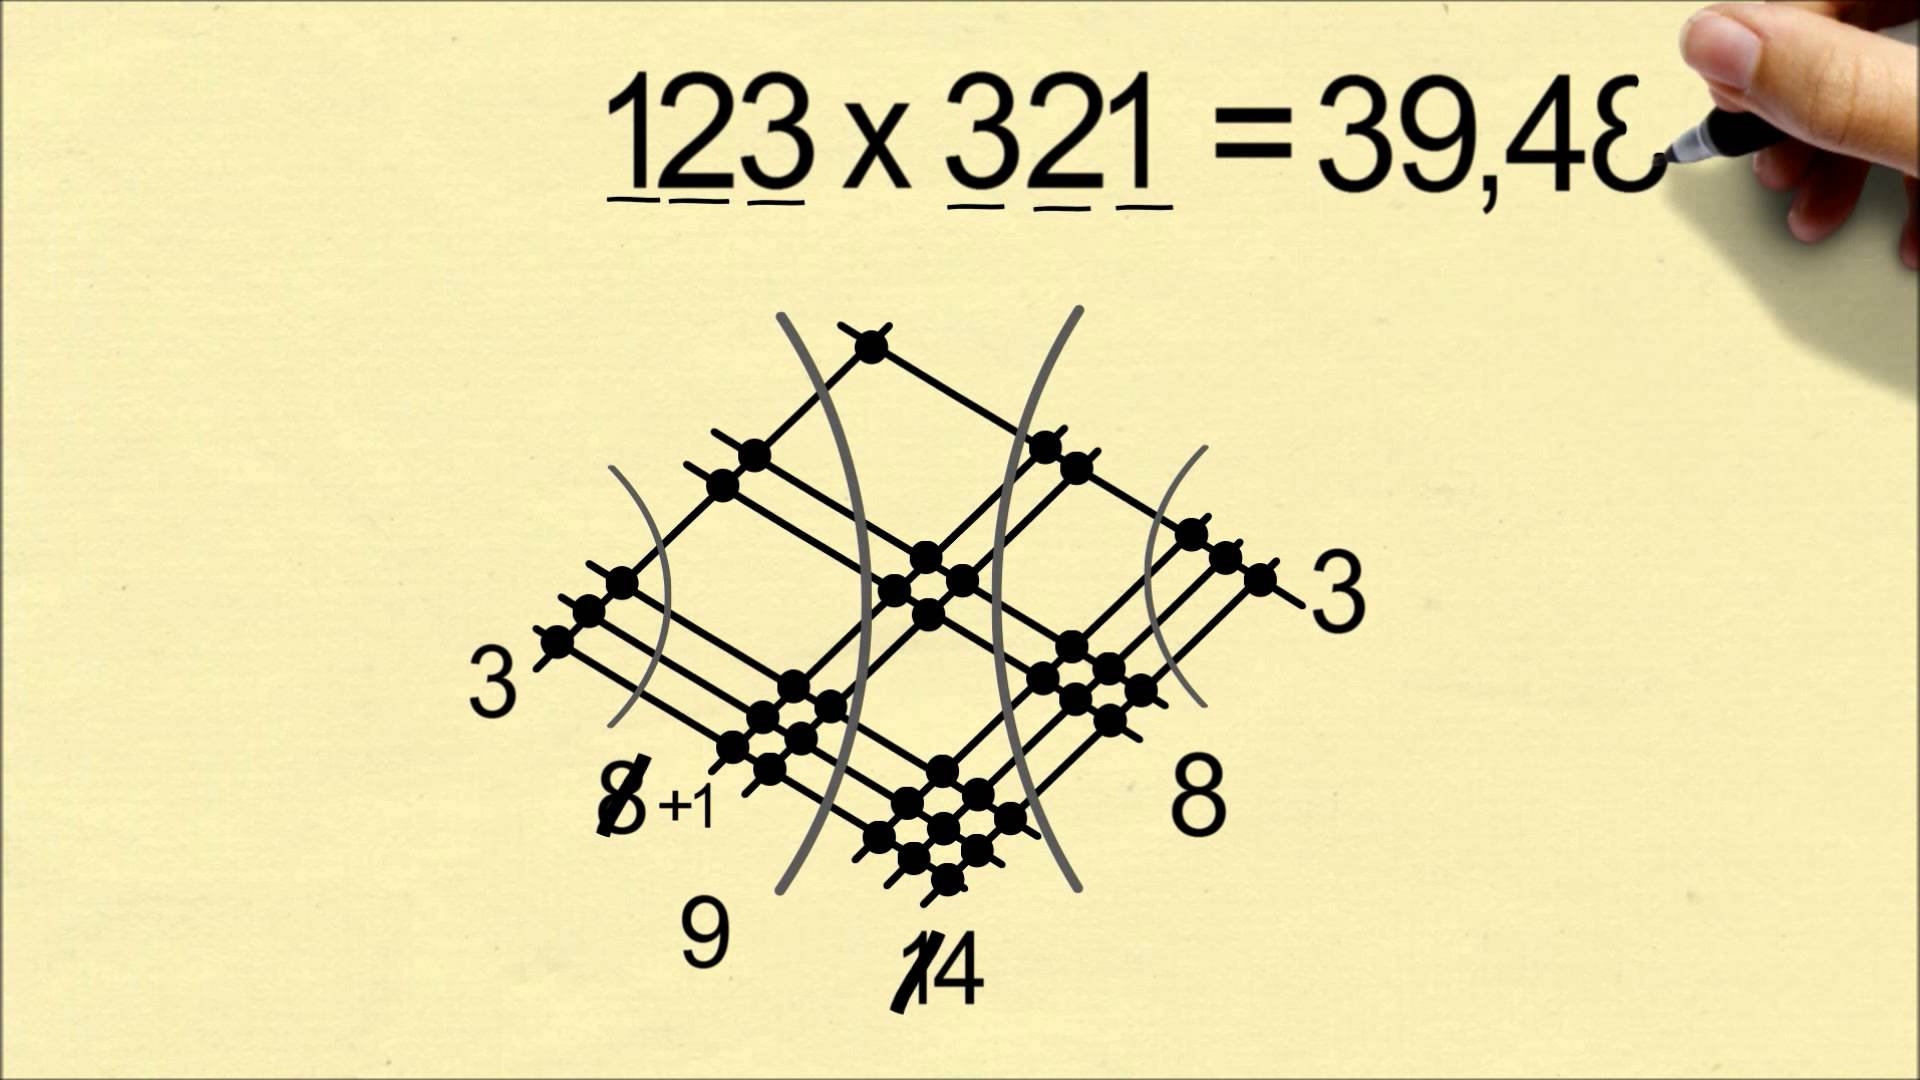 Drawing Lines For Multiplication : How to multiply numbers by drawing lines the kid should